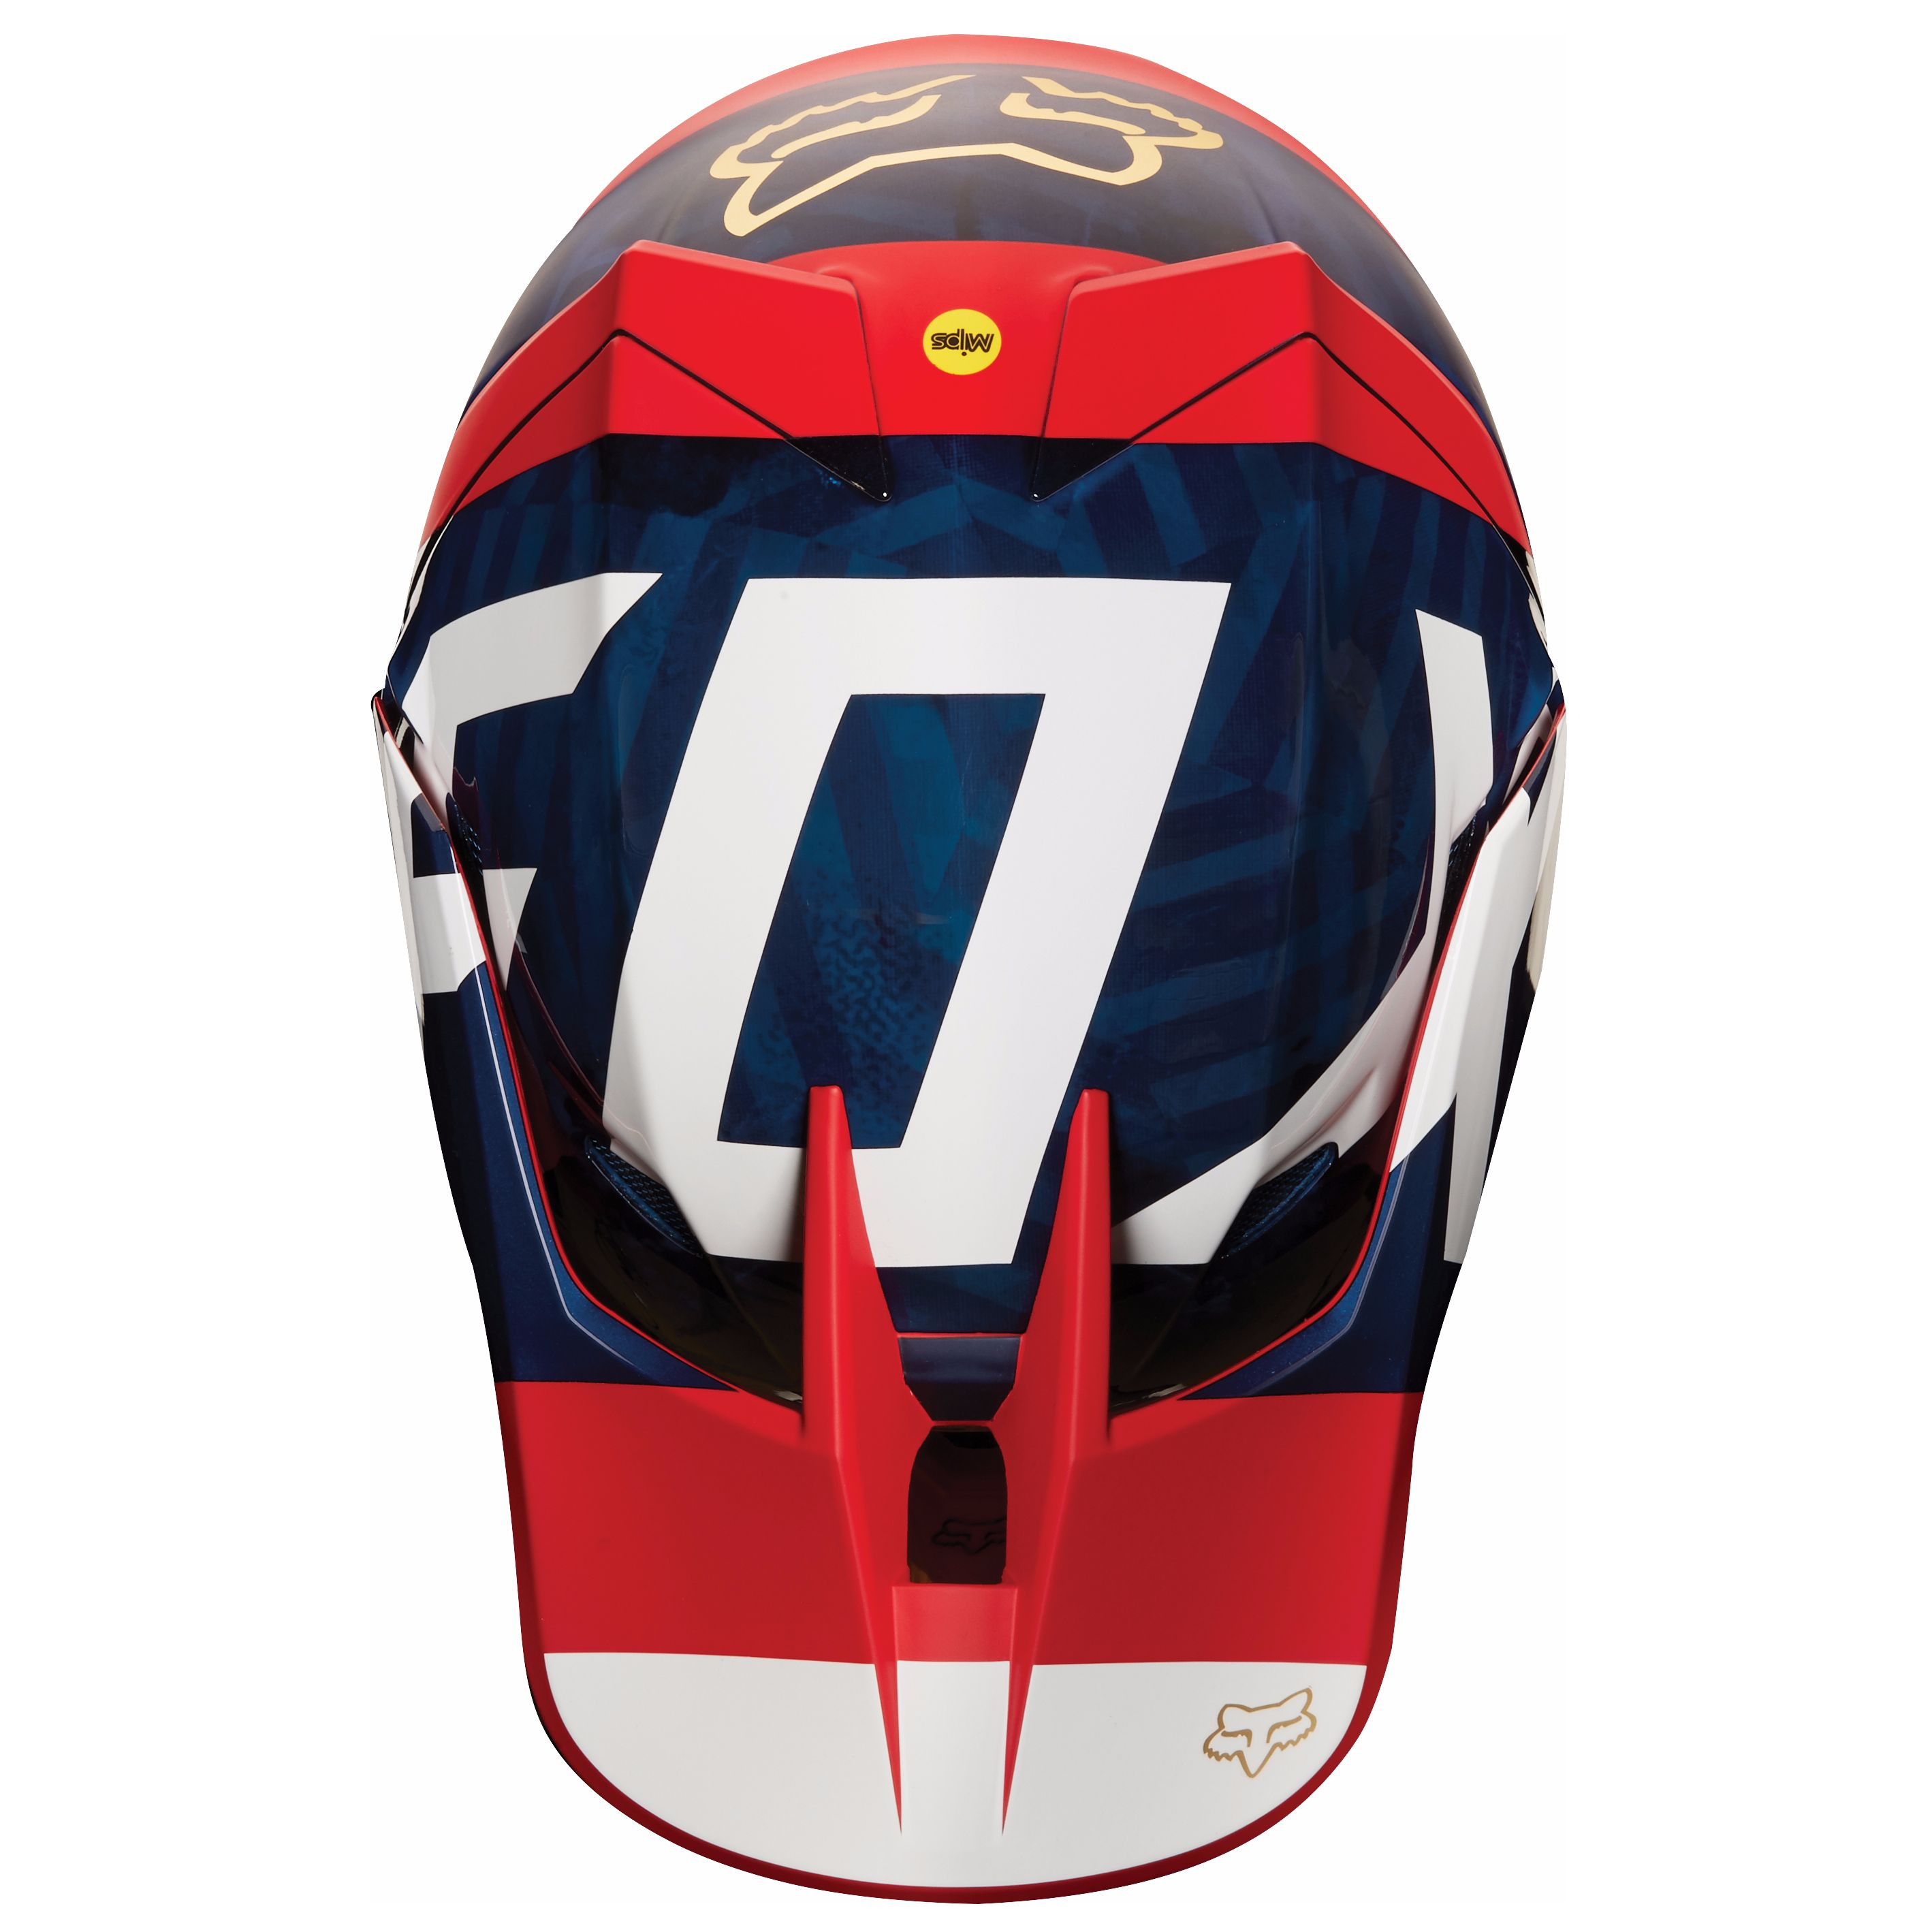 Casque cross Fox V3 PREEST - BLEU MARINE ROUGE (mat/brillant) -  2018